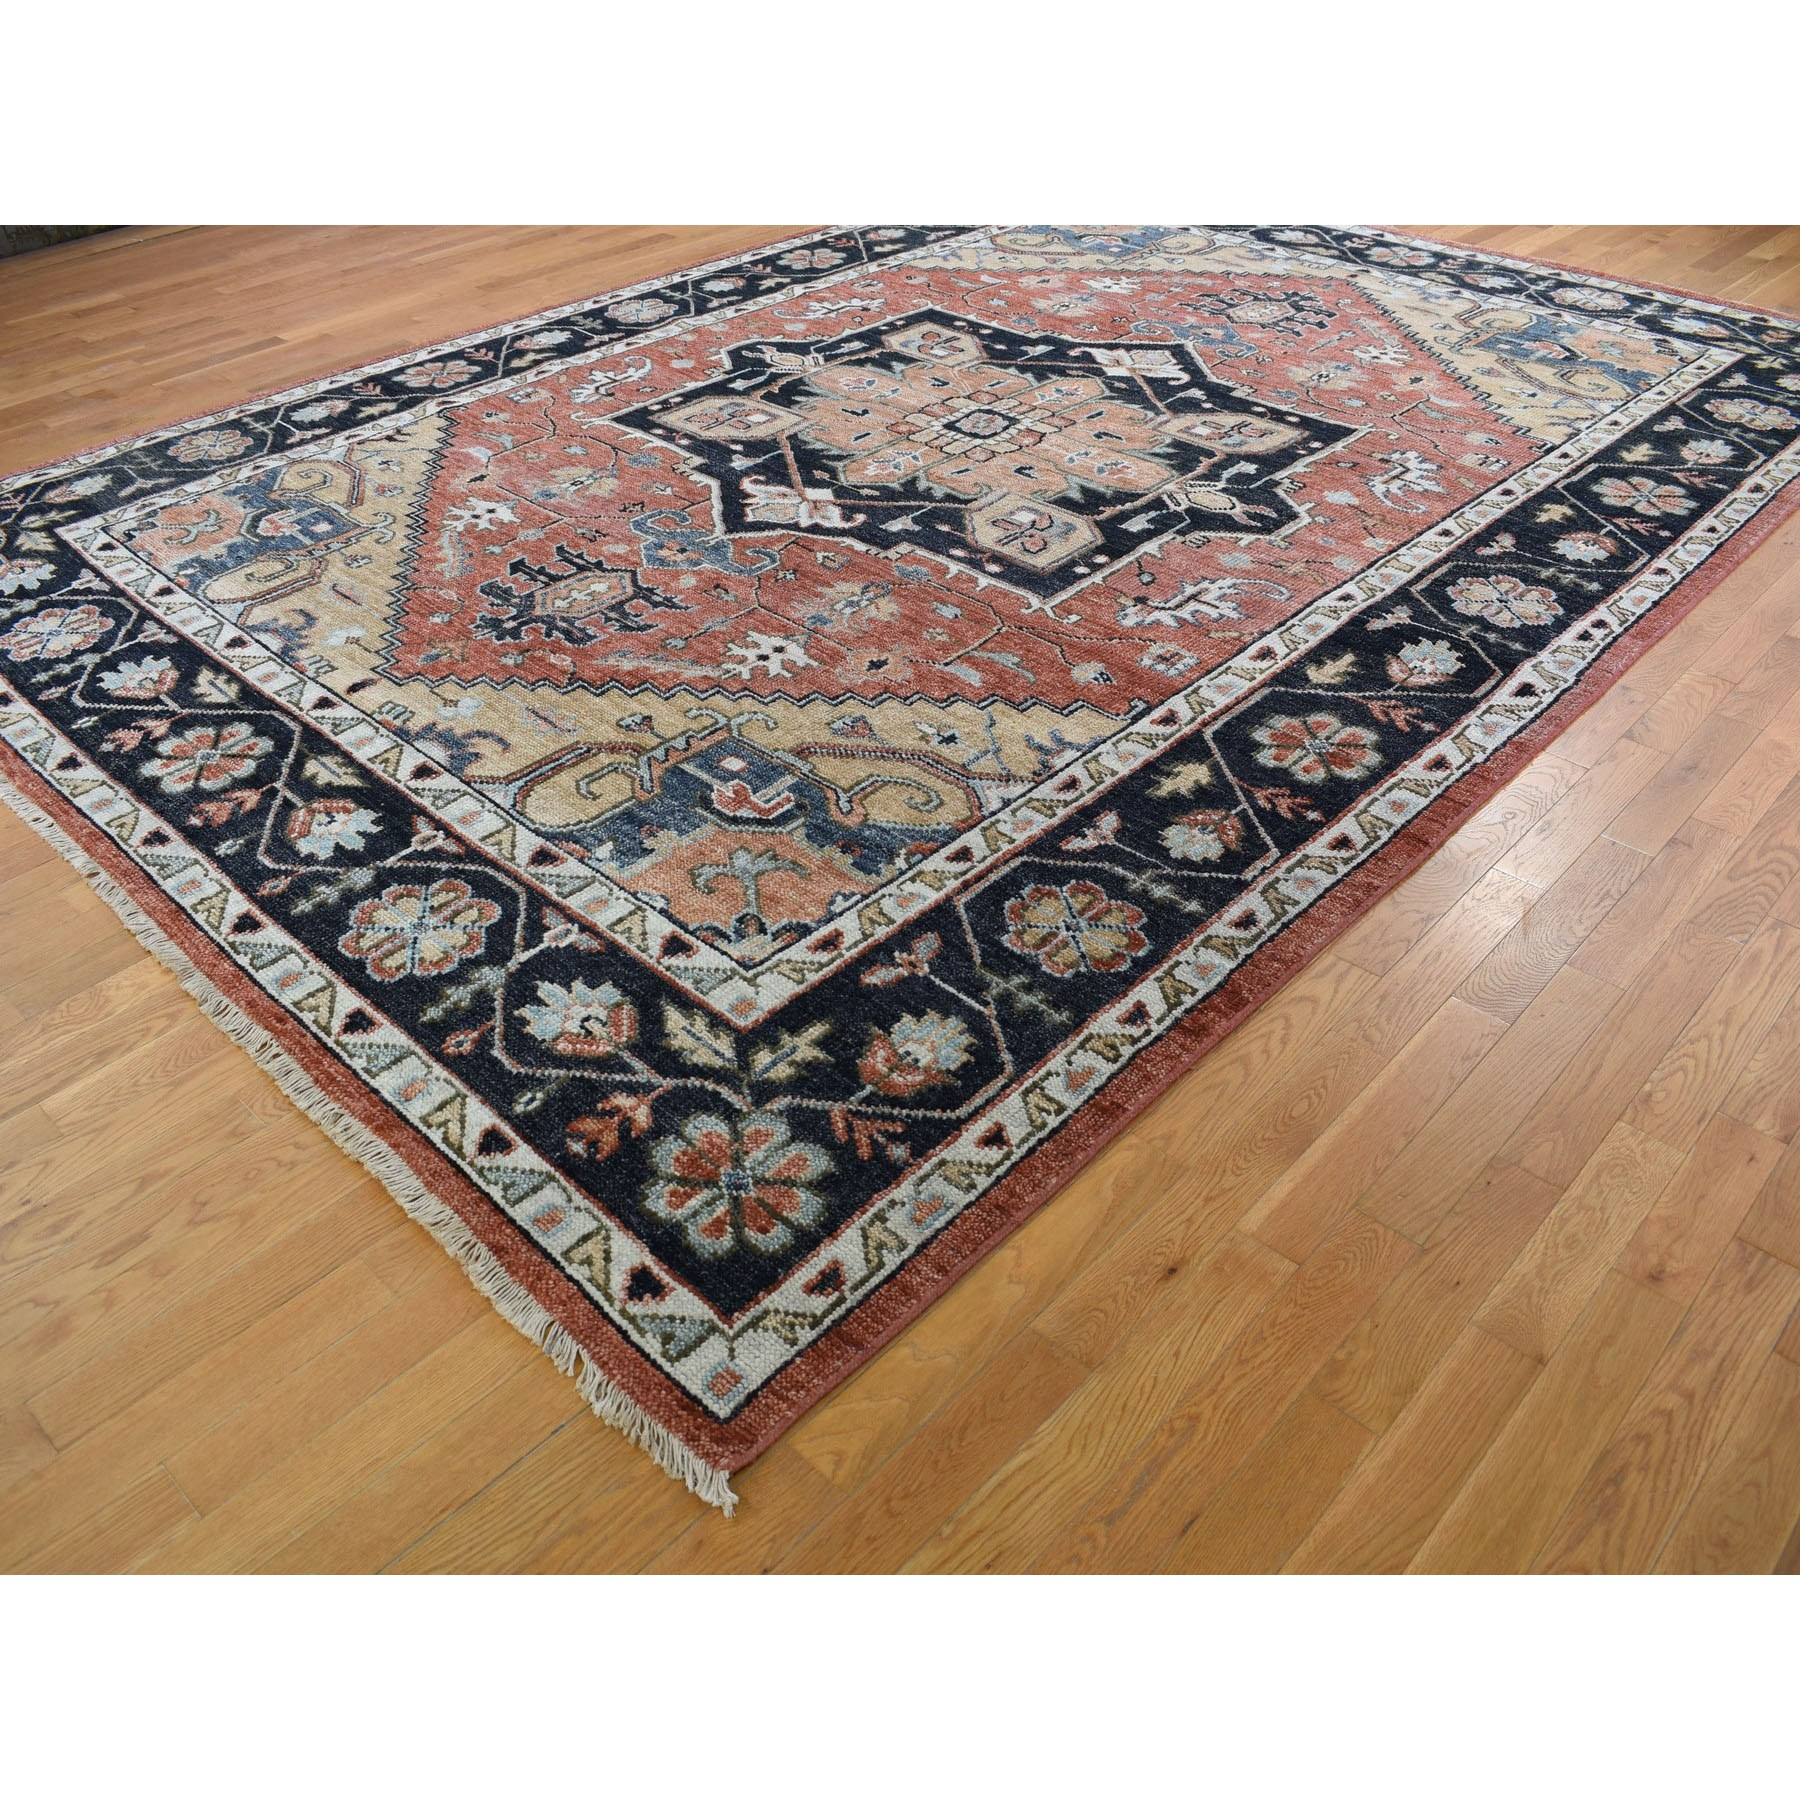 10'x14' Coral Supple Collection Heriz Design Soft wool Hand Knotted Oriental Rug